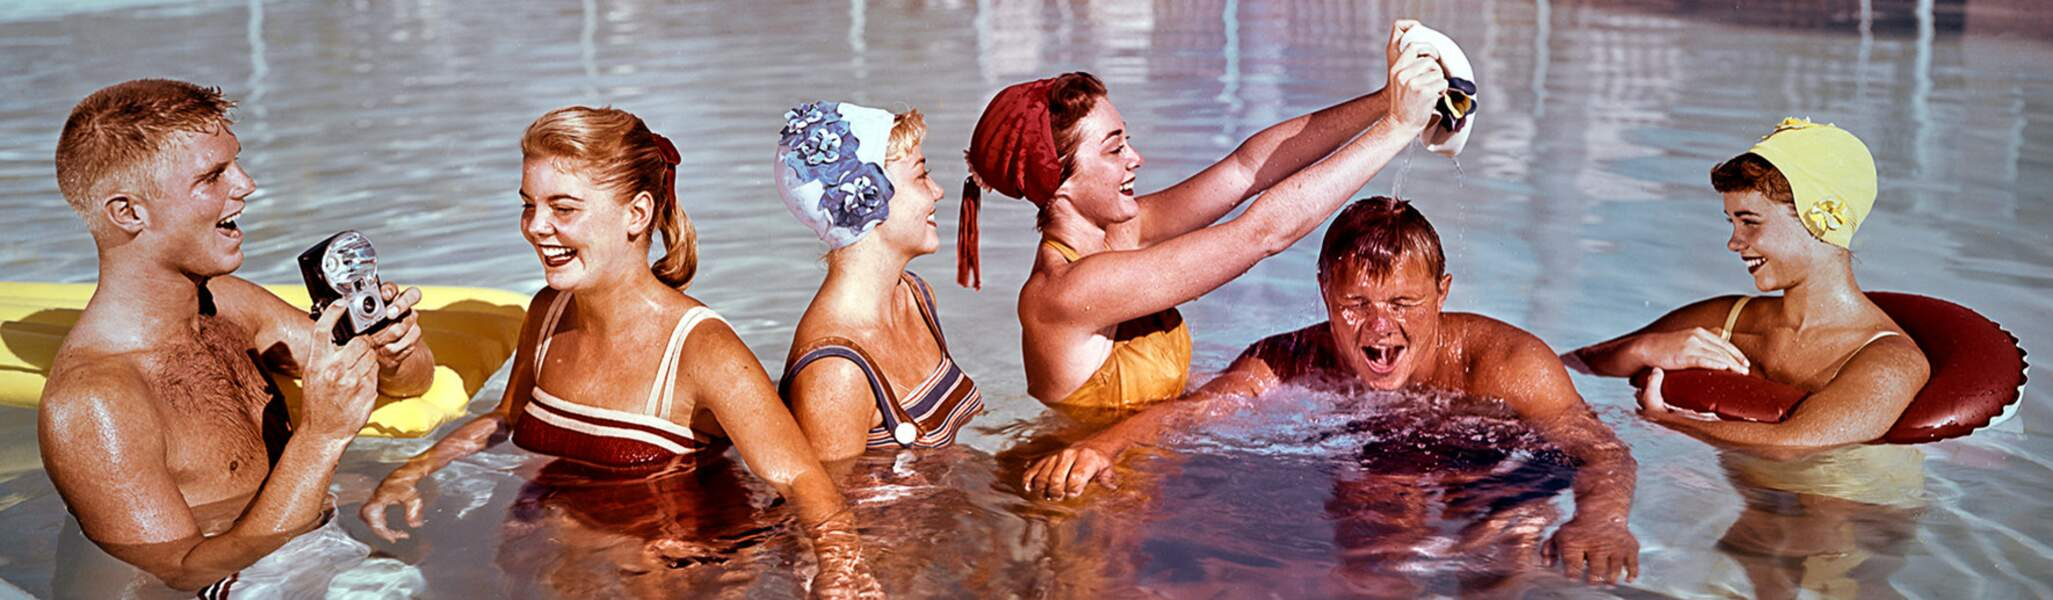 Pool Party, 1958